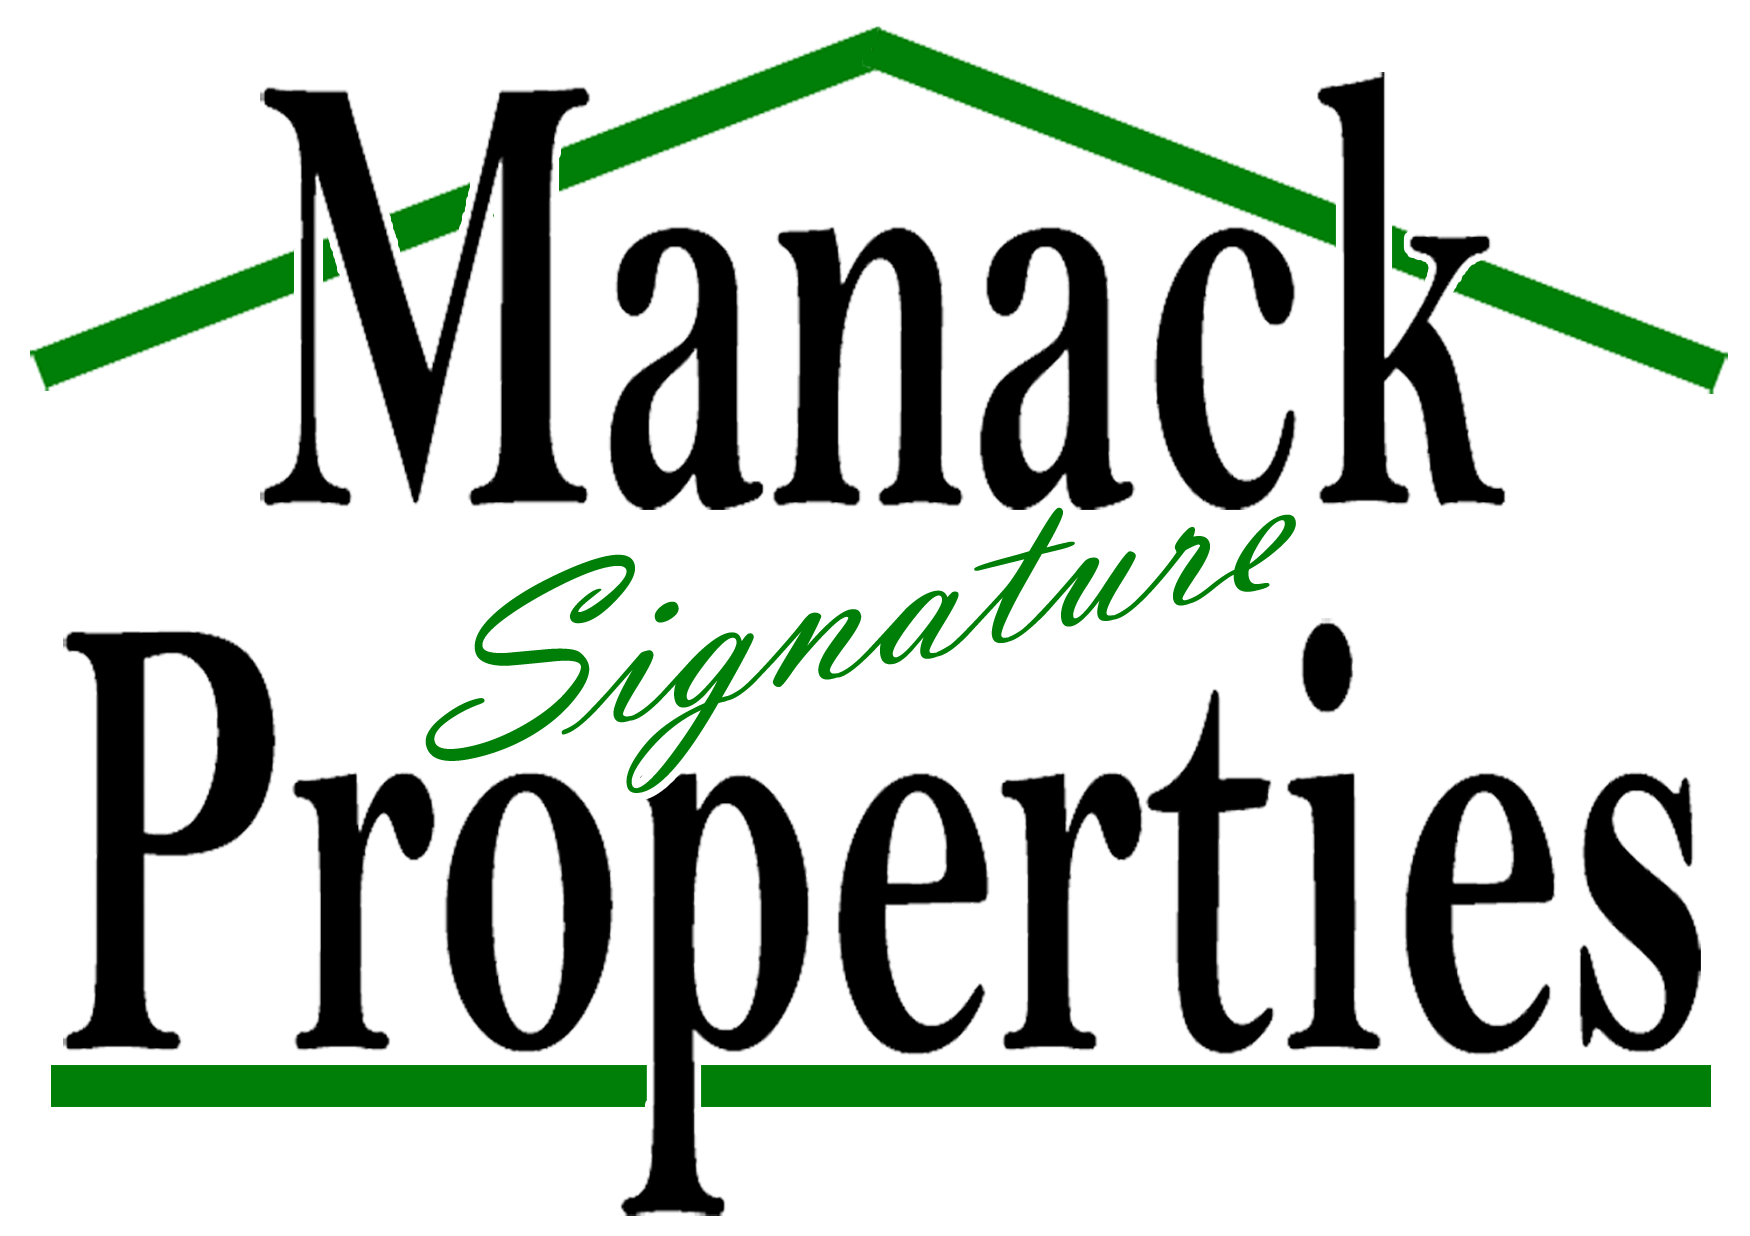 Manack Signature Properties Statesboro, GA | Homes For Sale | Commercial Properties | Rentals